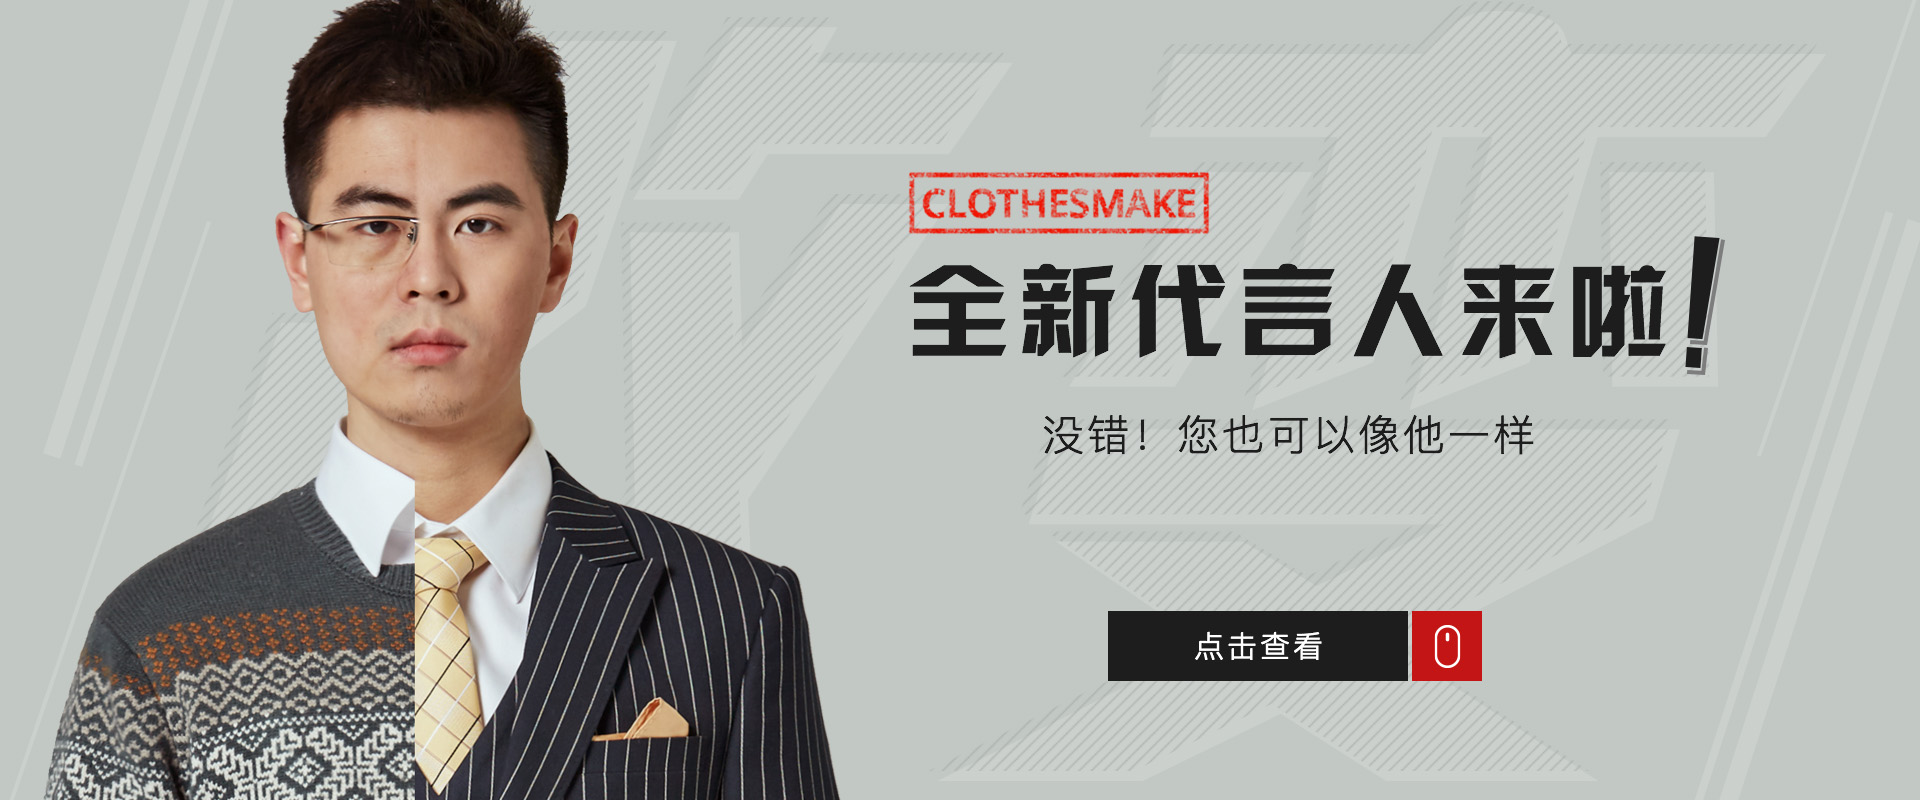 Design a personalized suit that makes you stand out at ClothesMake.